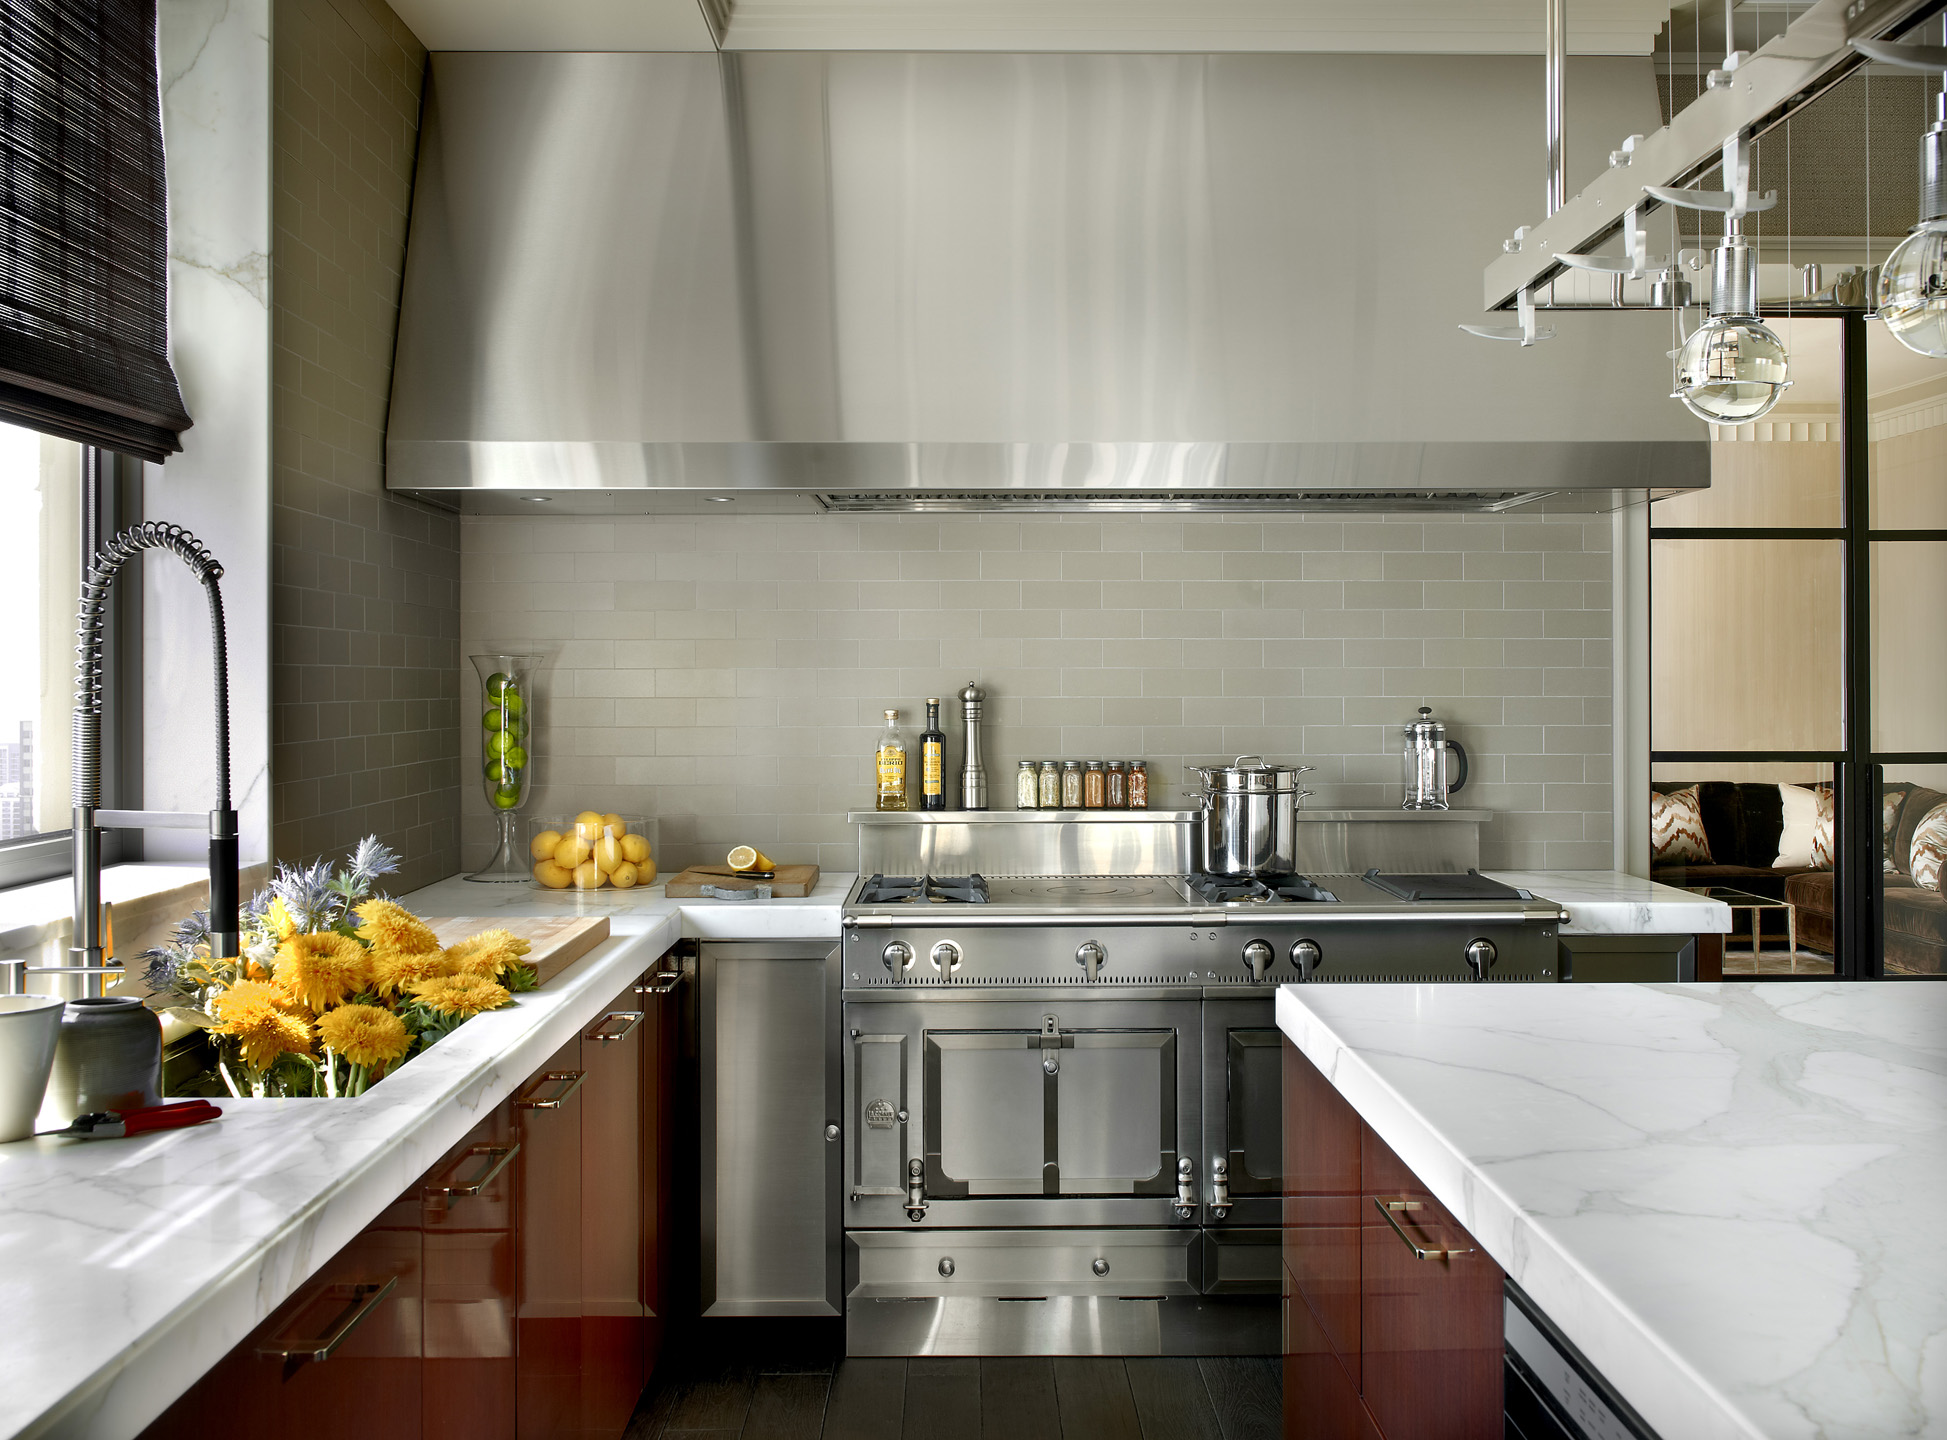 Burk Kitchen 1.jpg